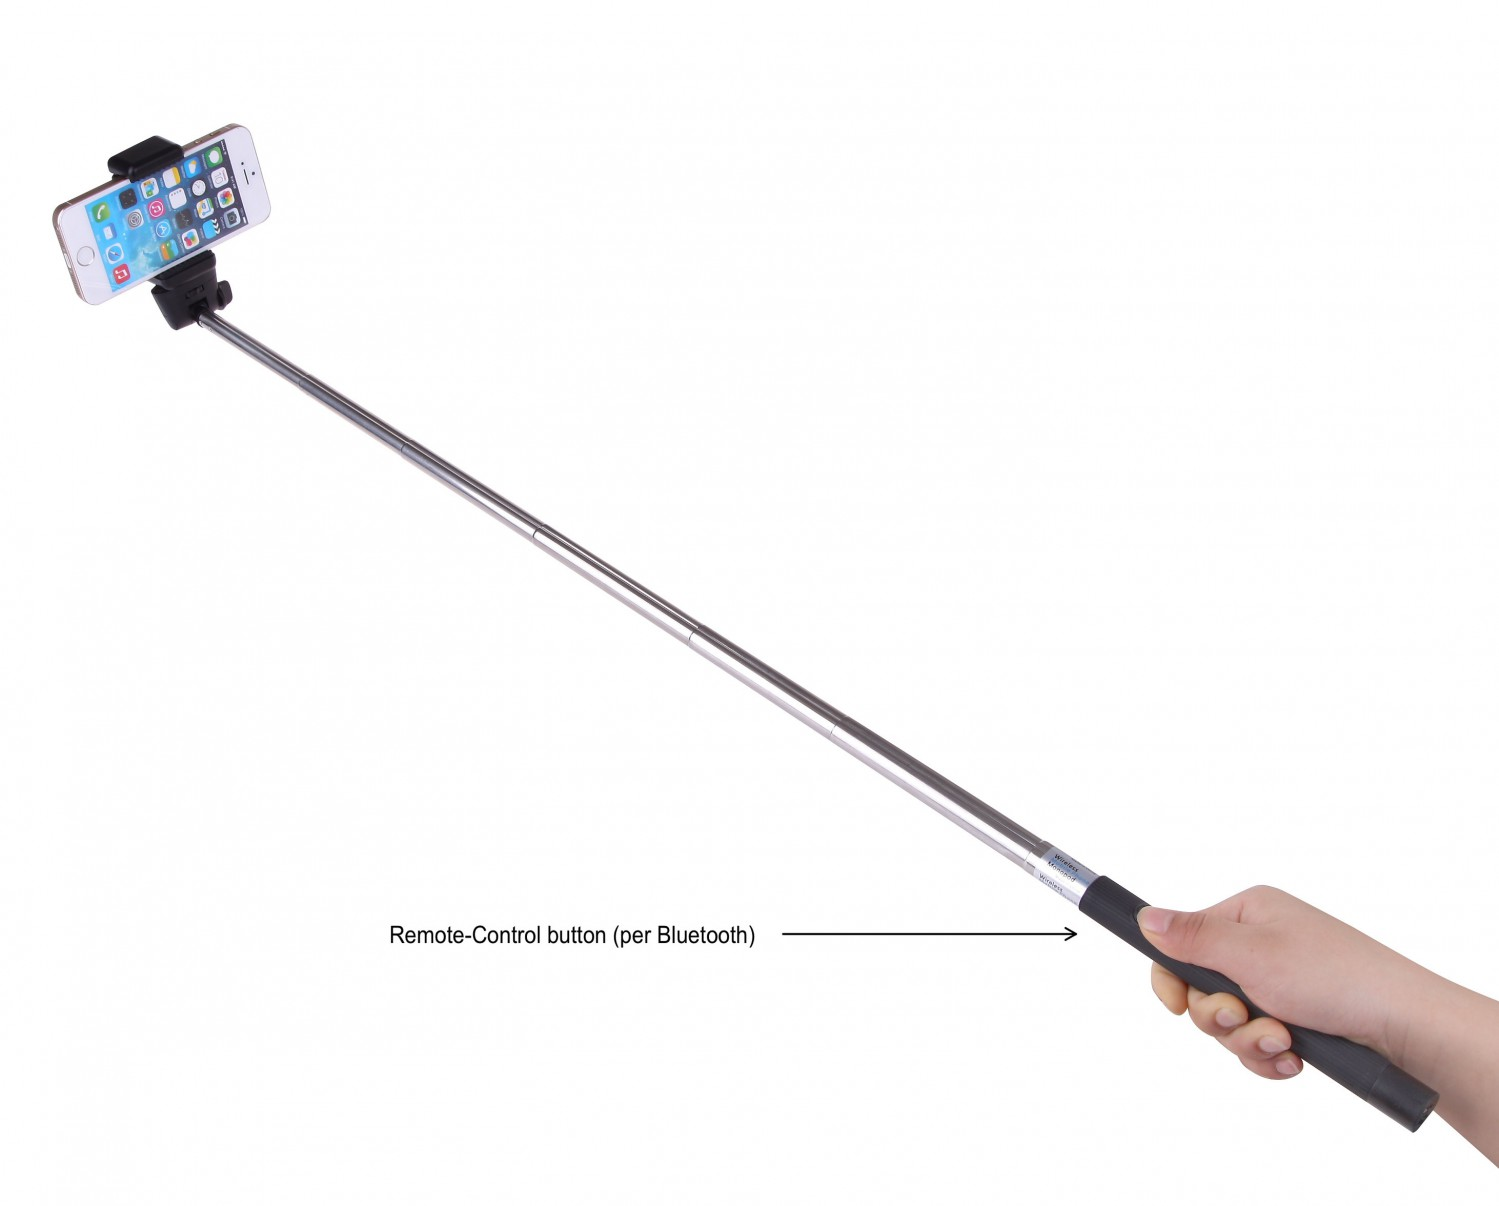 selfie stick monopod fernausl ser knopf bluetooth smartphone iphone samsung htc iphone docks. Black Bedroom Furniture Sets. Home Design Ideas